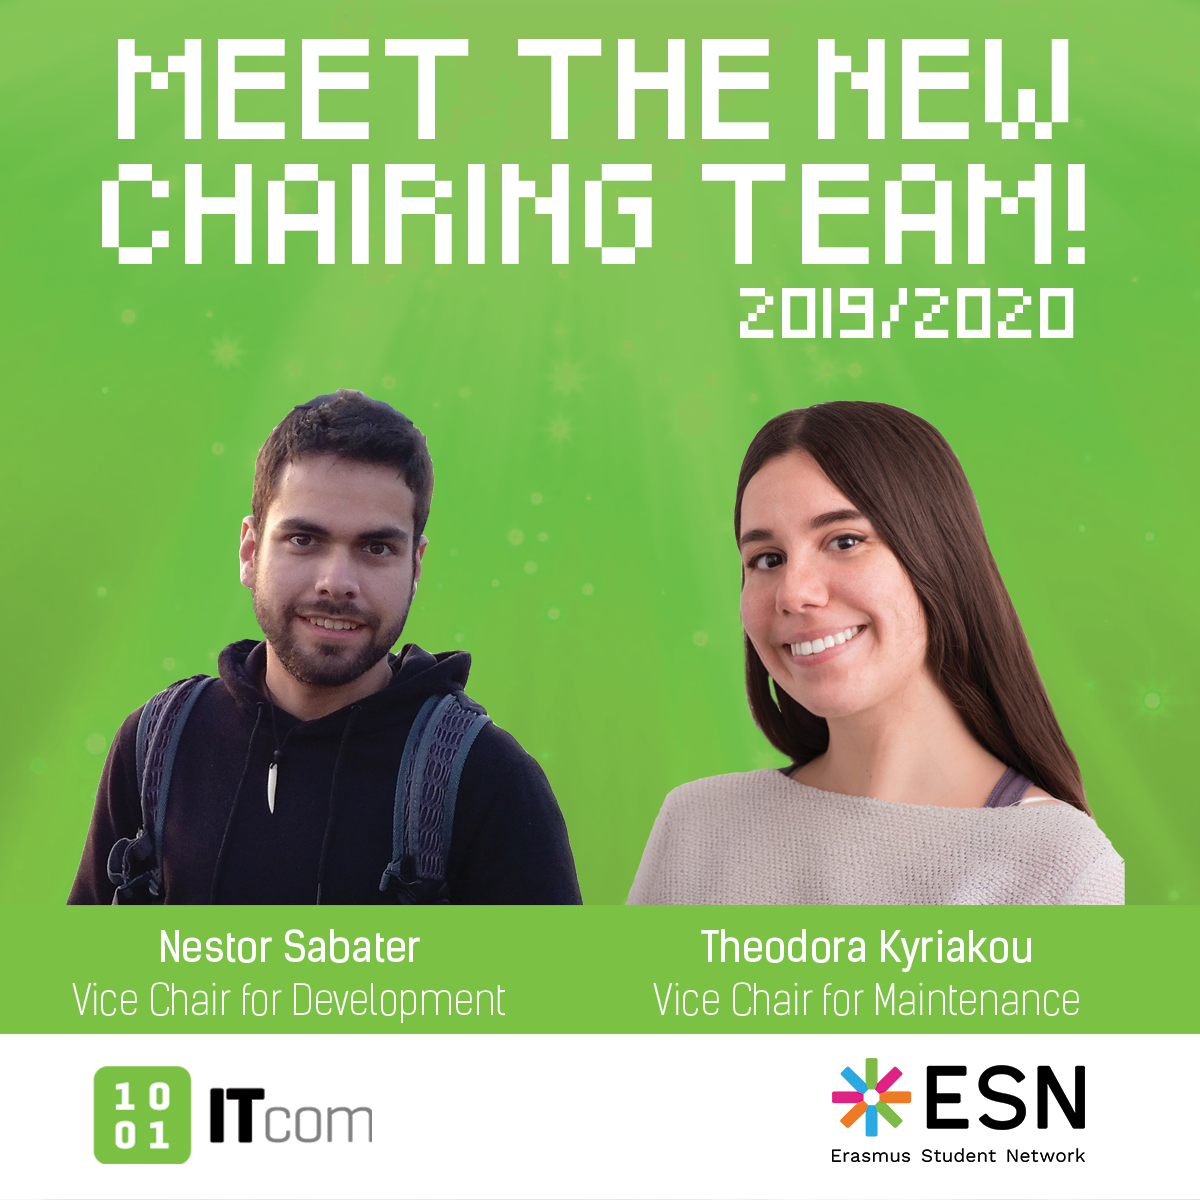 Nestor Sabater, new Vice-chair for development in ESN ITcom